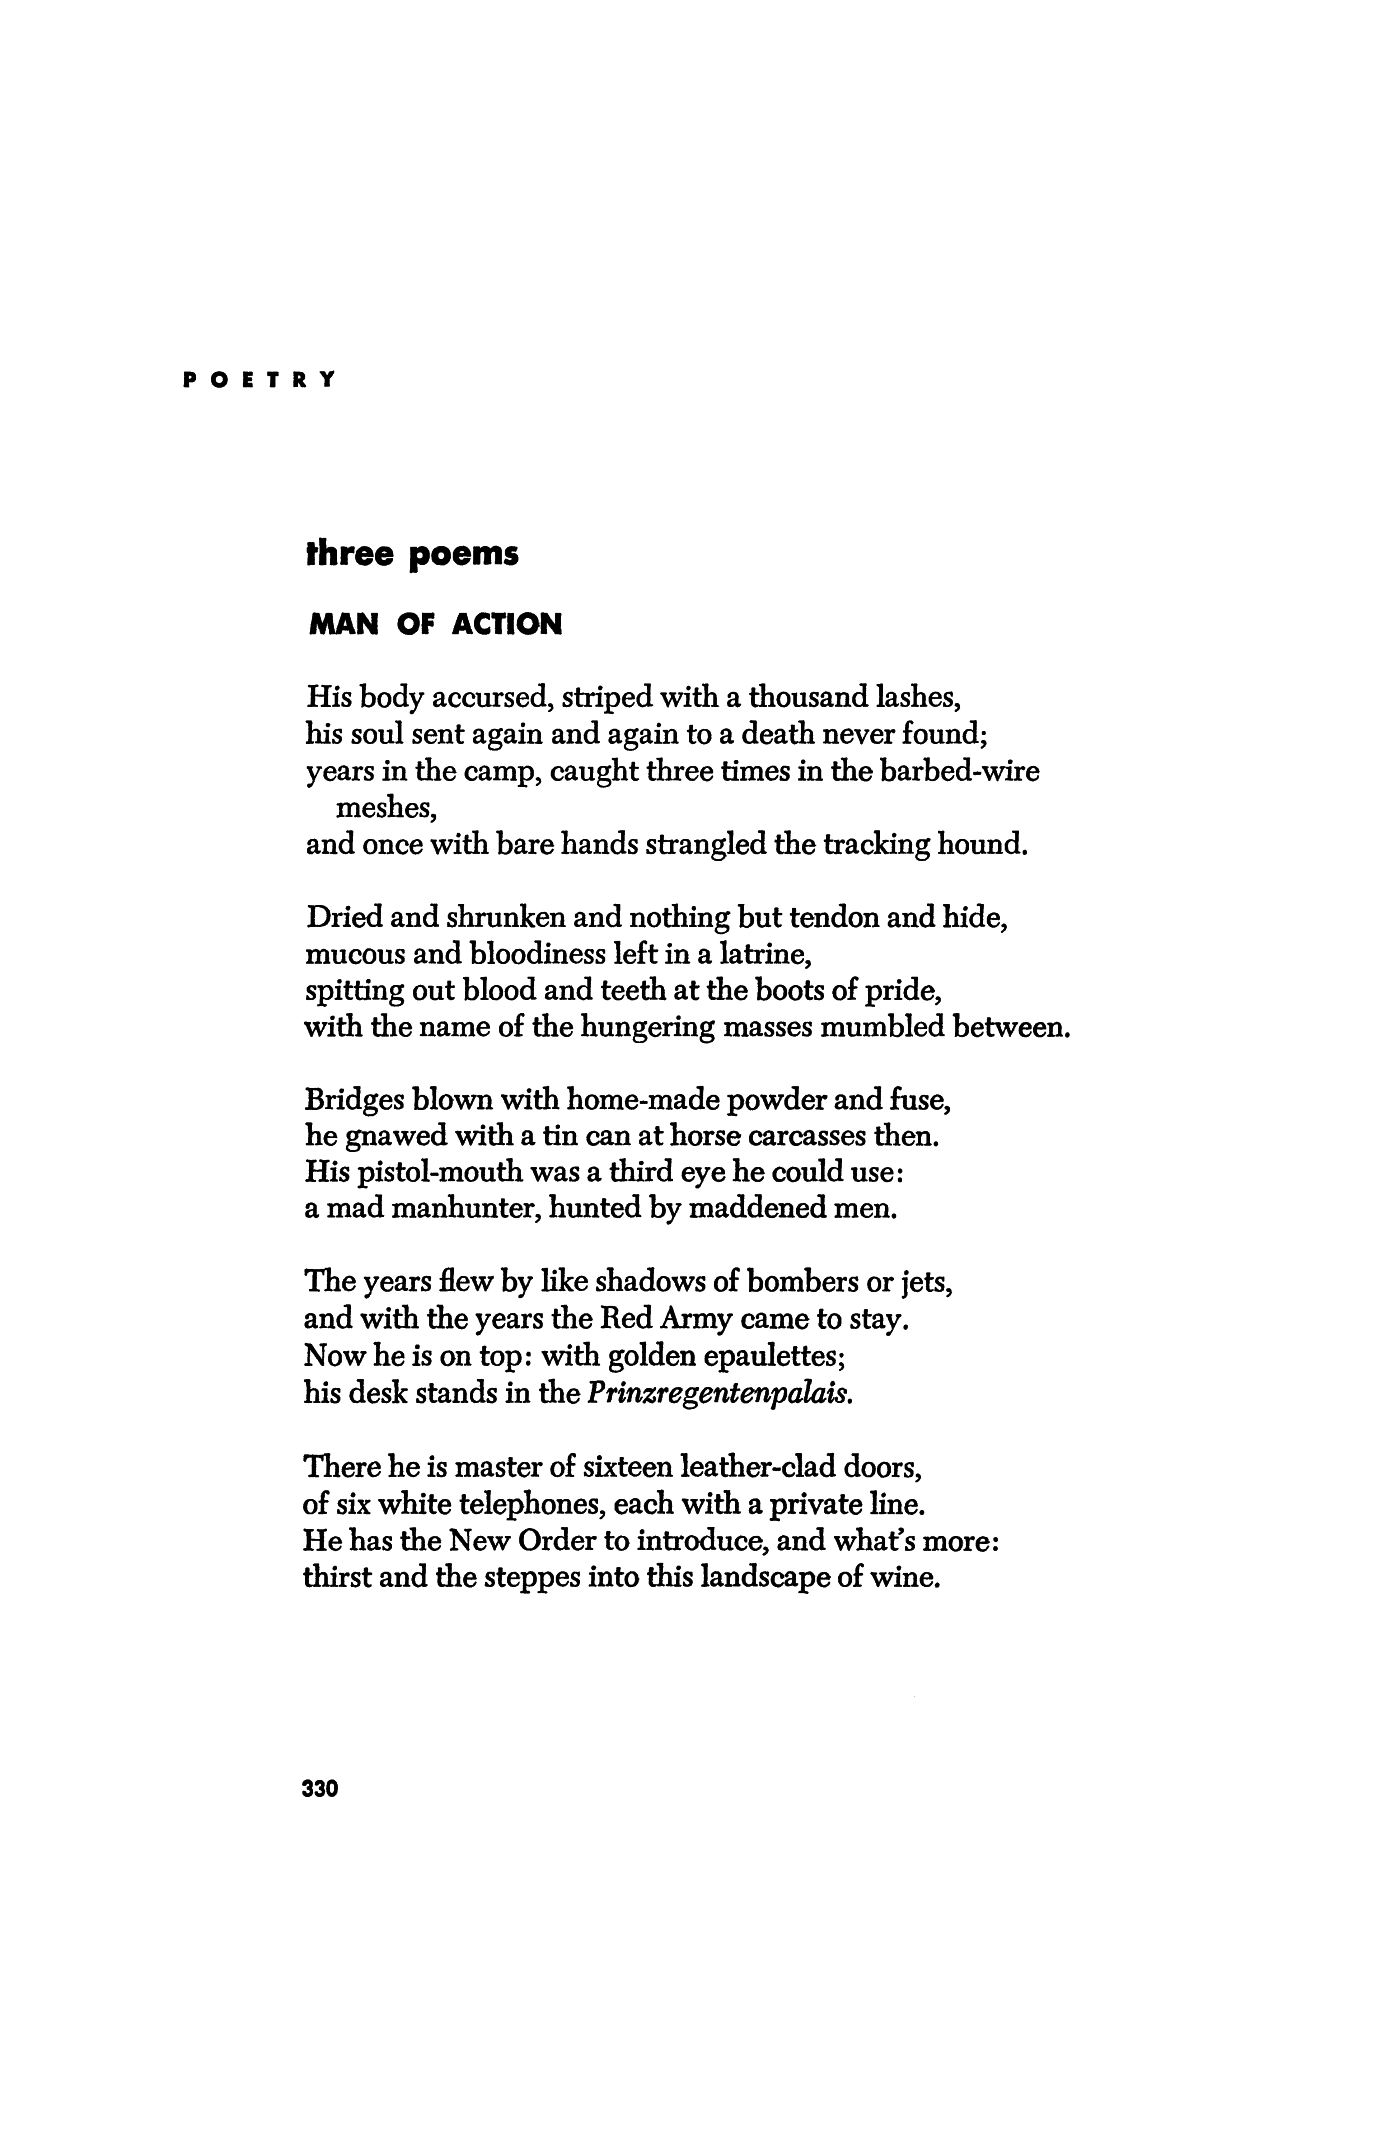 Man of Action by Hans Egon Holthusen | Poetry Magazine